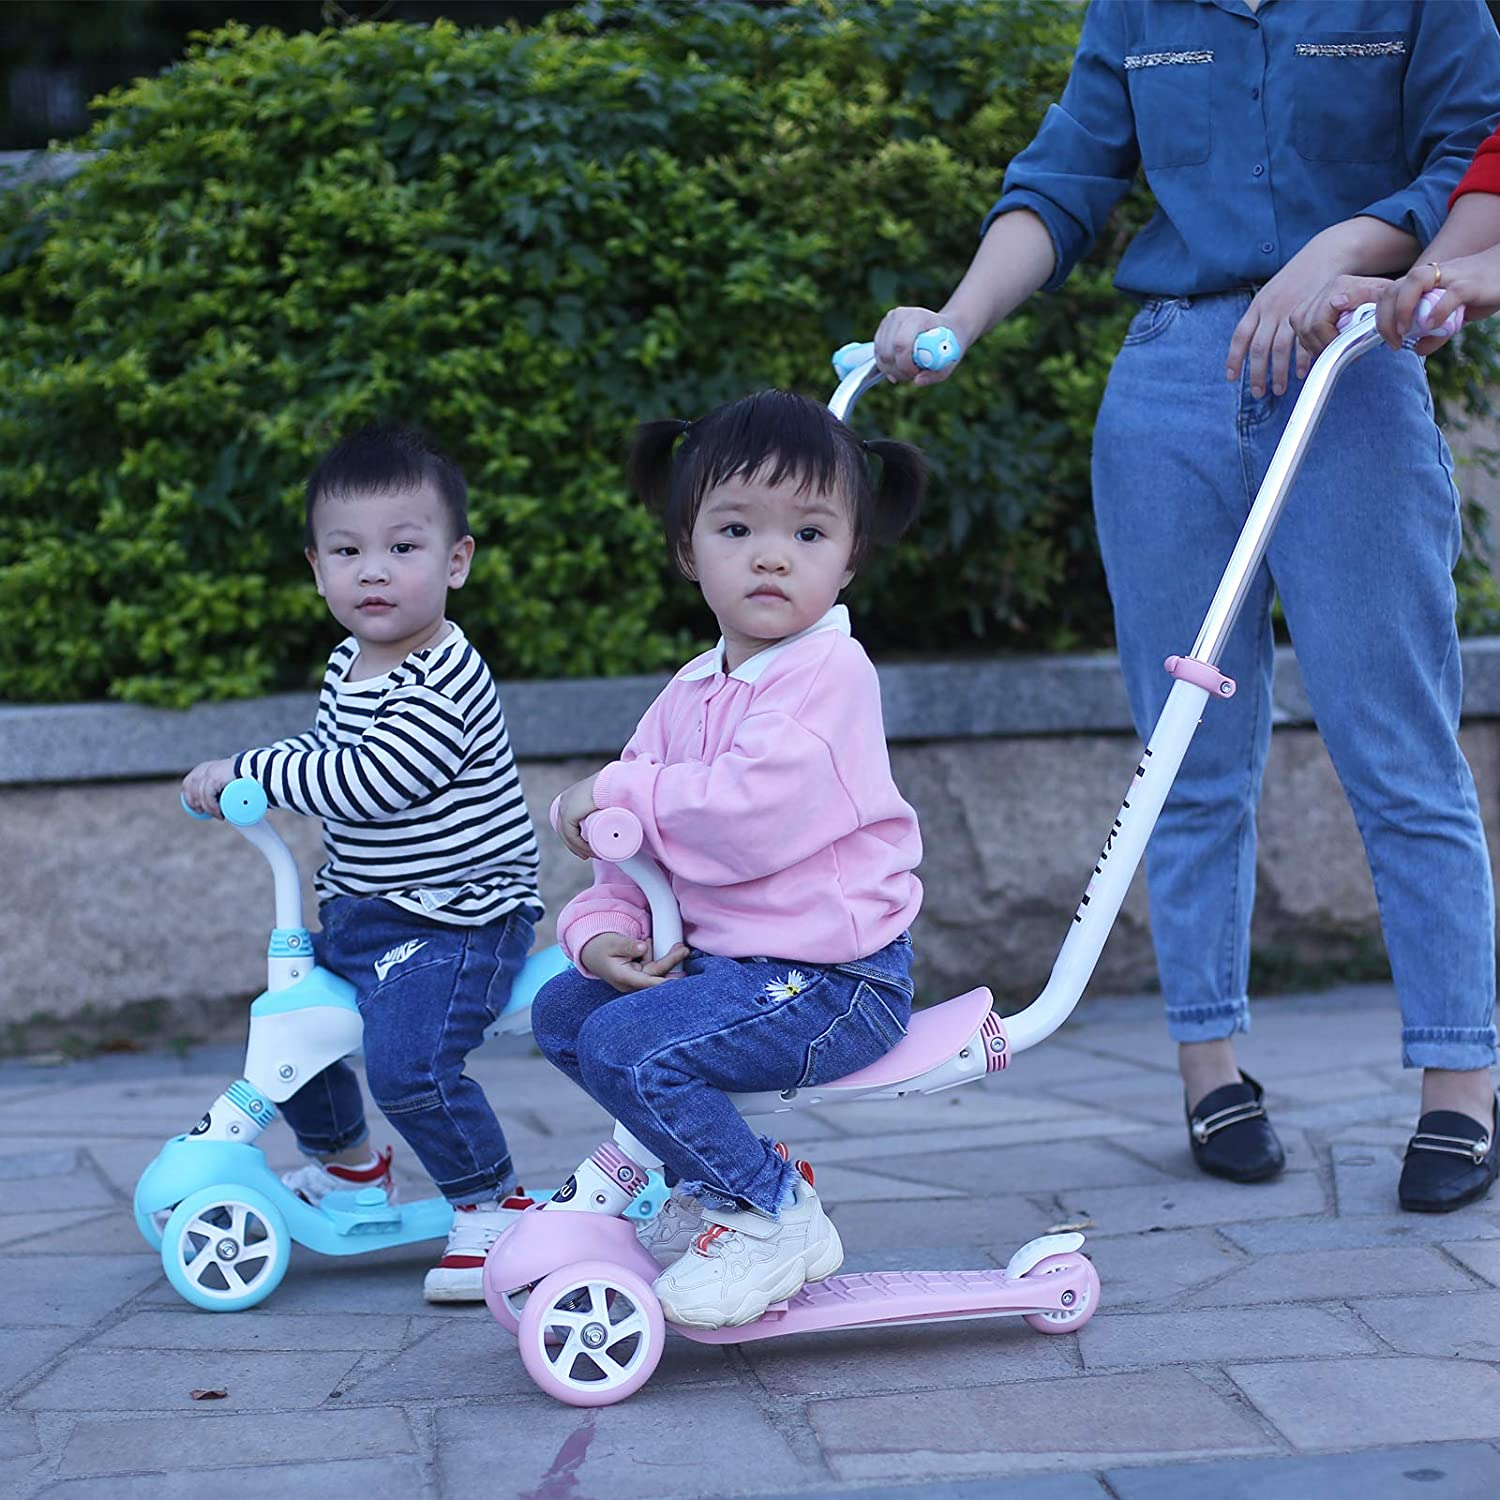 Sit or Stand Ride with Brake for Boys and Girls 3-in-1 Kick Scooter with Removable Seat and Handle LIKU 3-Wheeled Scooter for Kids